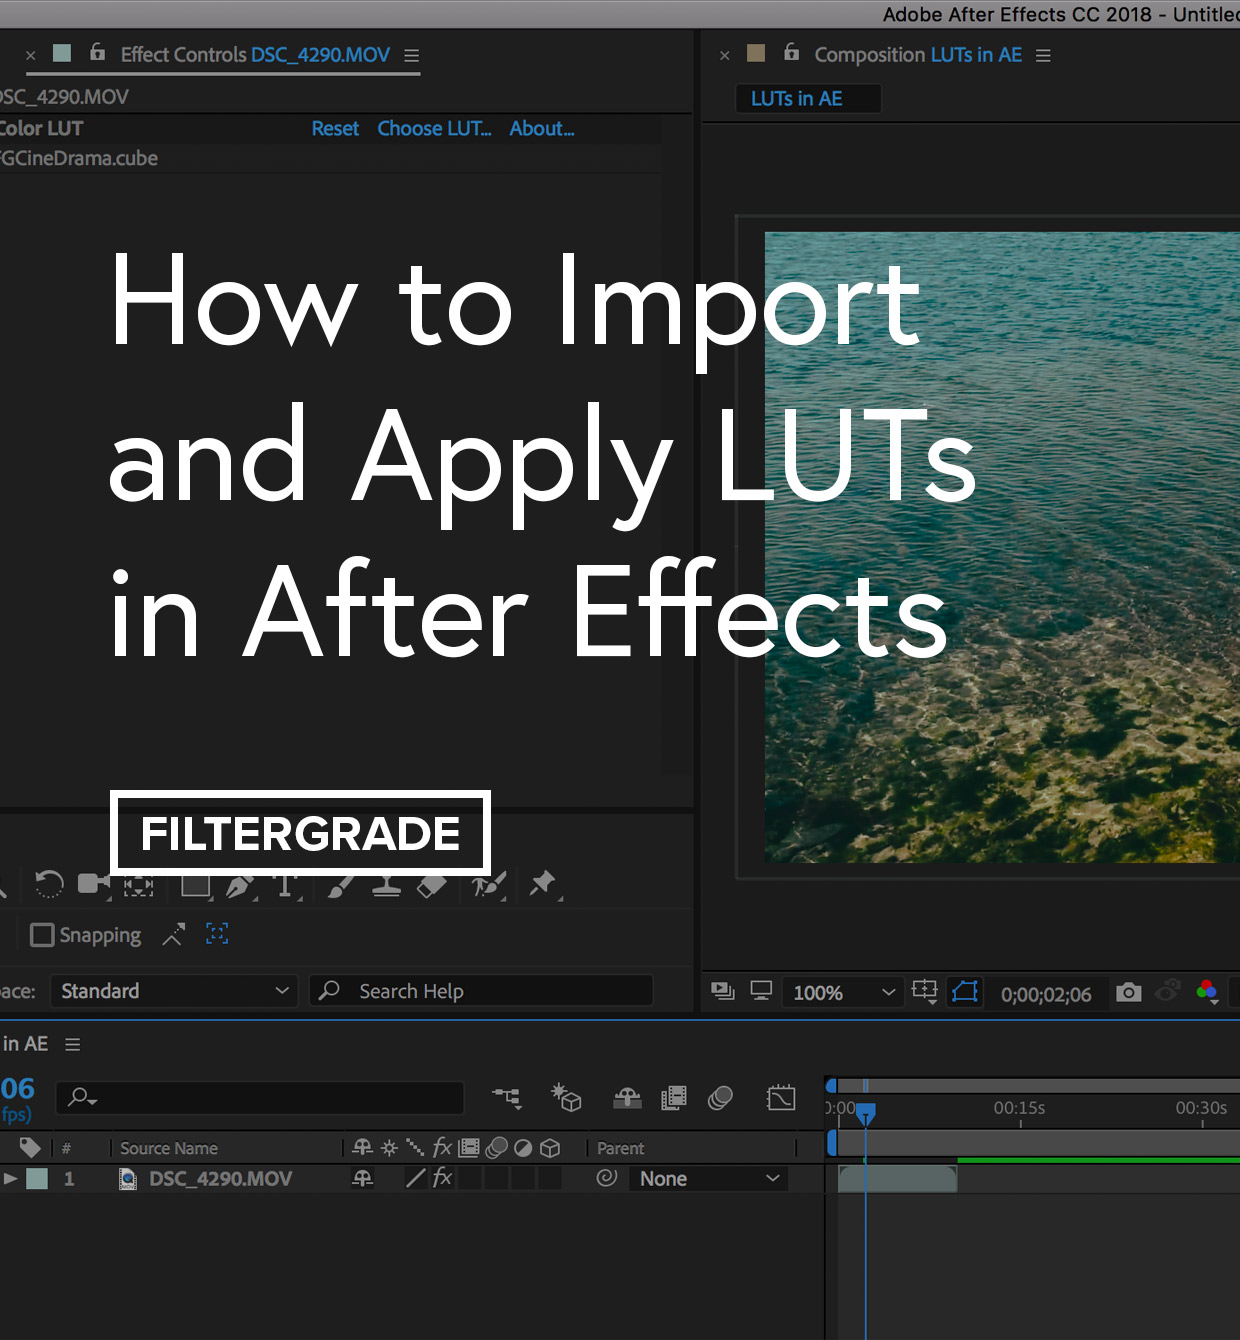 A step-by-step tutorial on how to import and apply LUTs in After Effects.